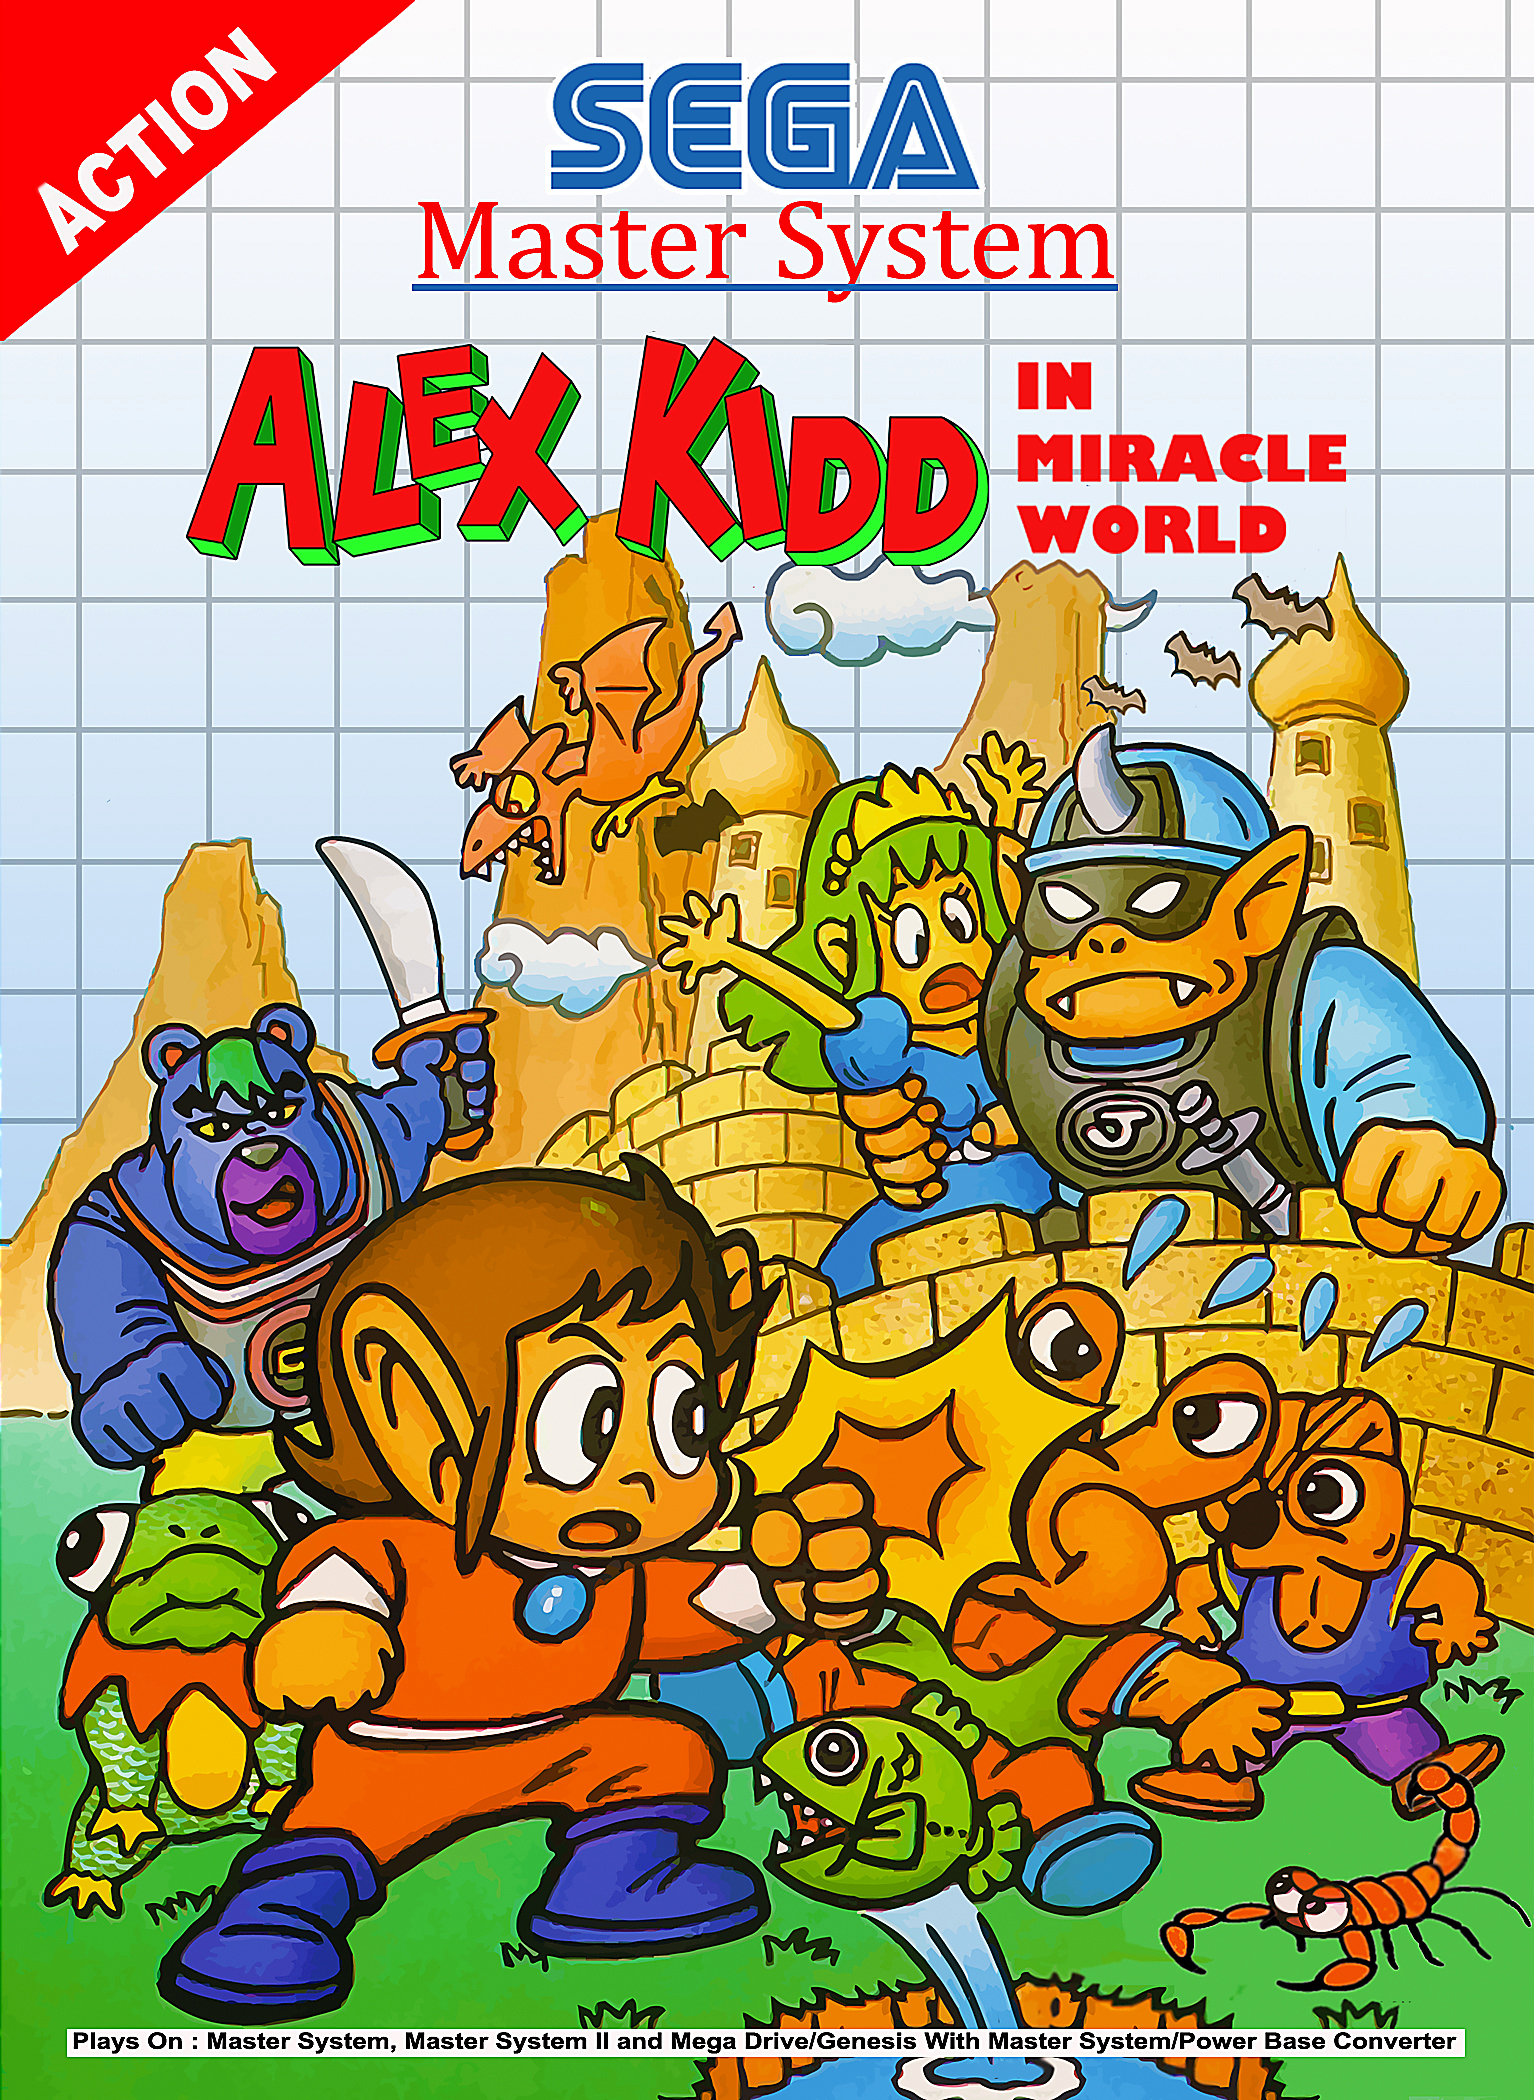 alex the kid in mirical world